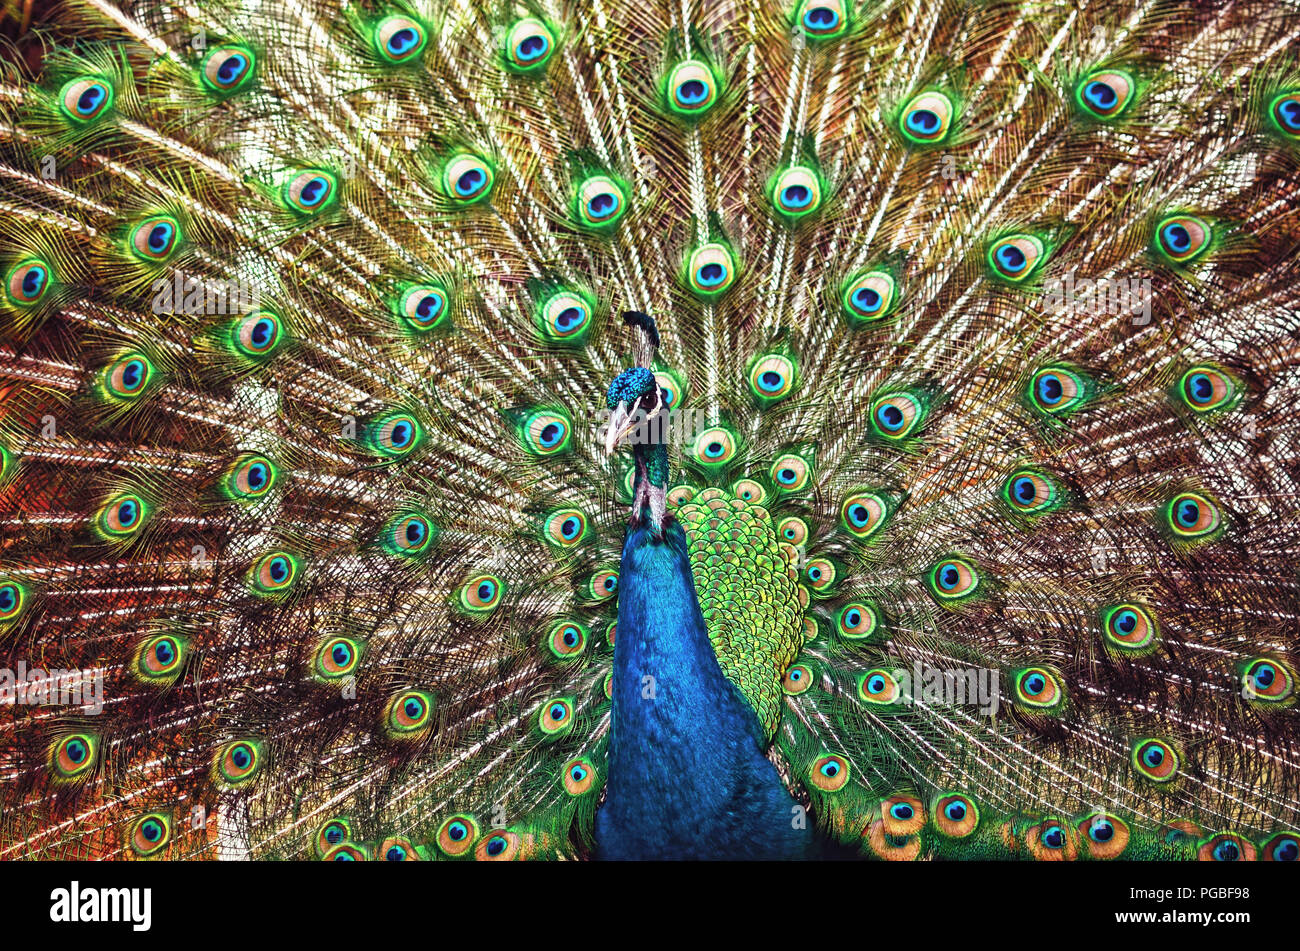 Closeup portrait of a peacock/peafowl - Stock Image